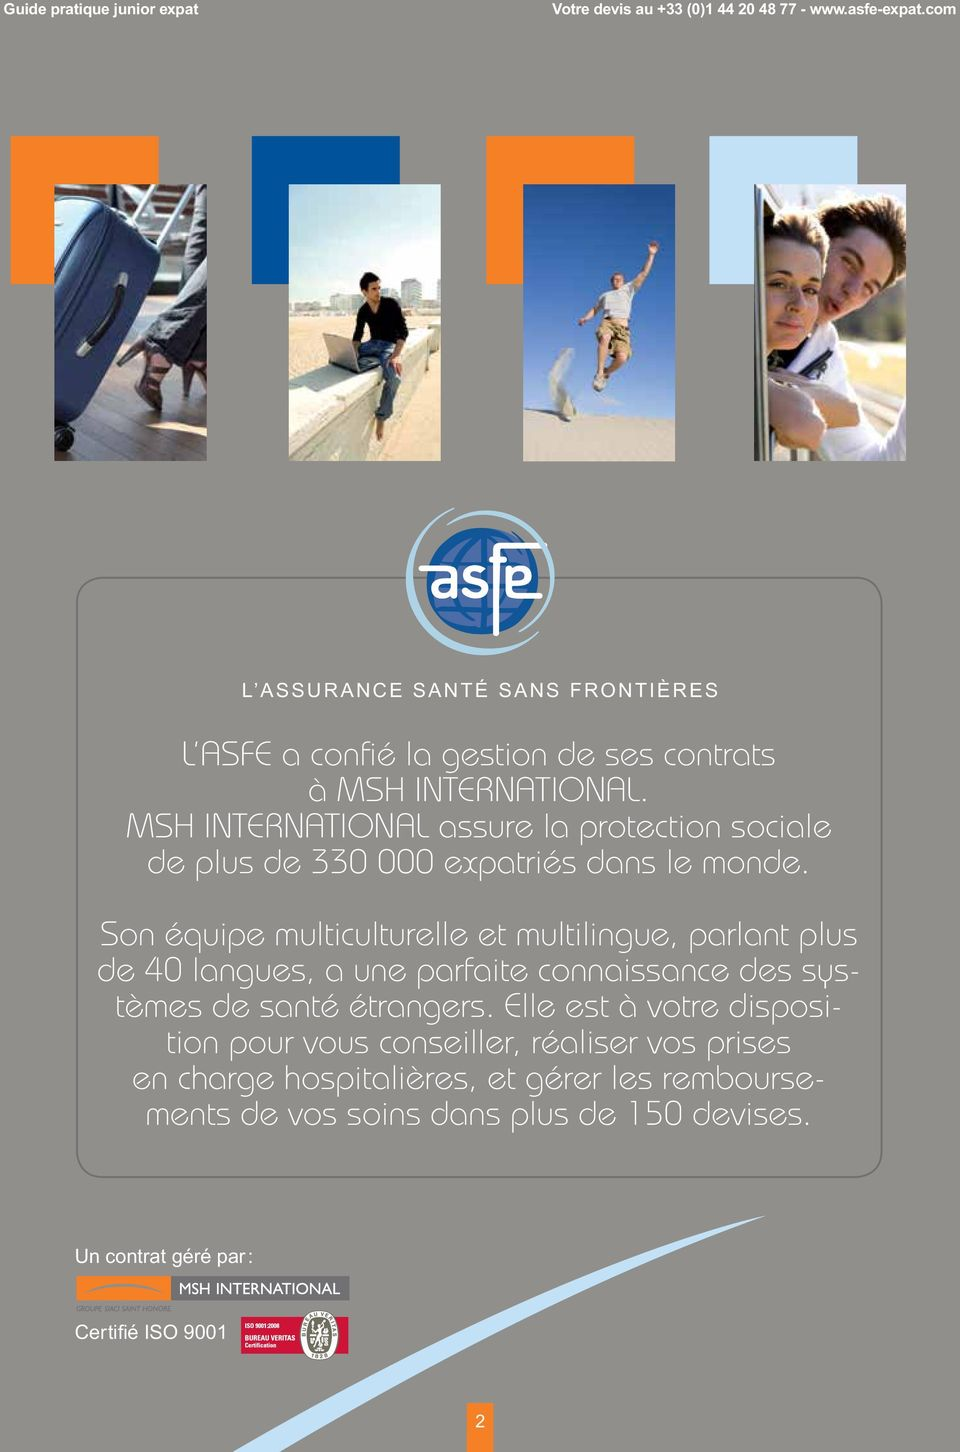 MSH INTERNATIONAL assure la protection sociale de plus de 330 000 expatriés dans le monde.